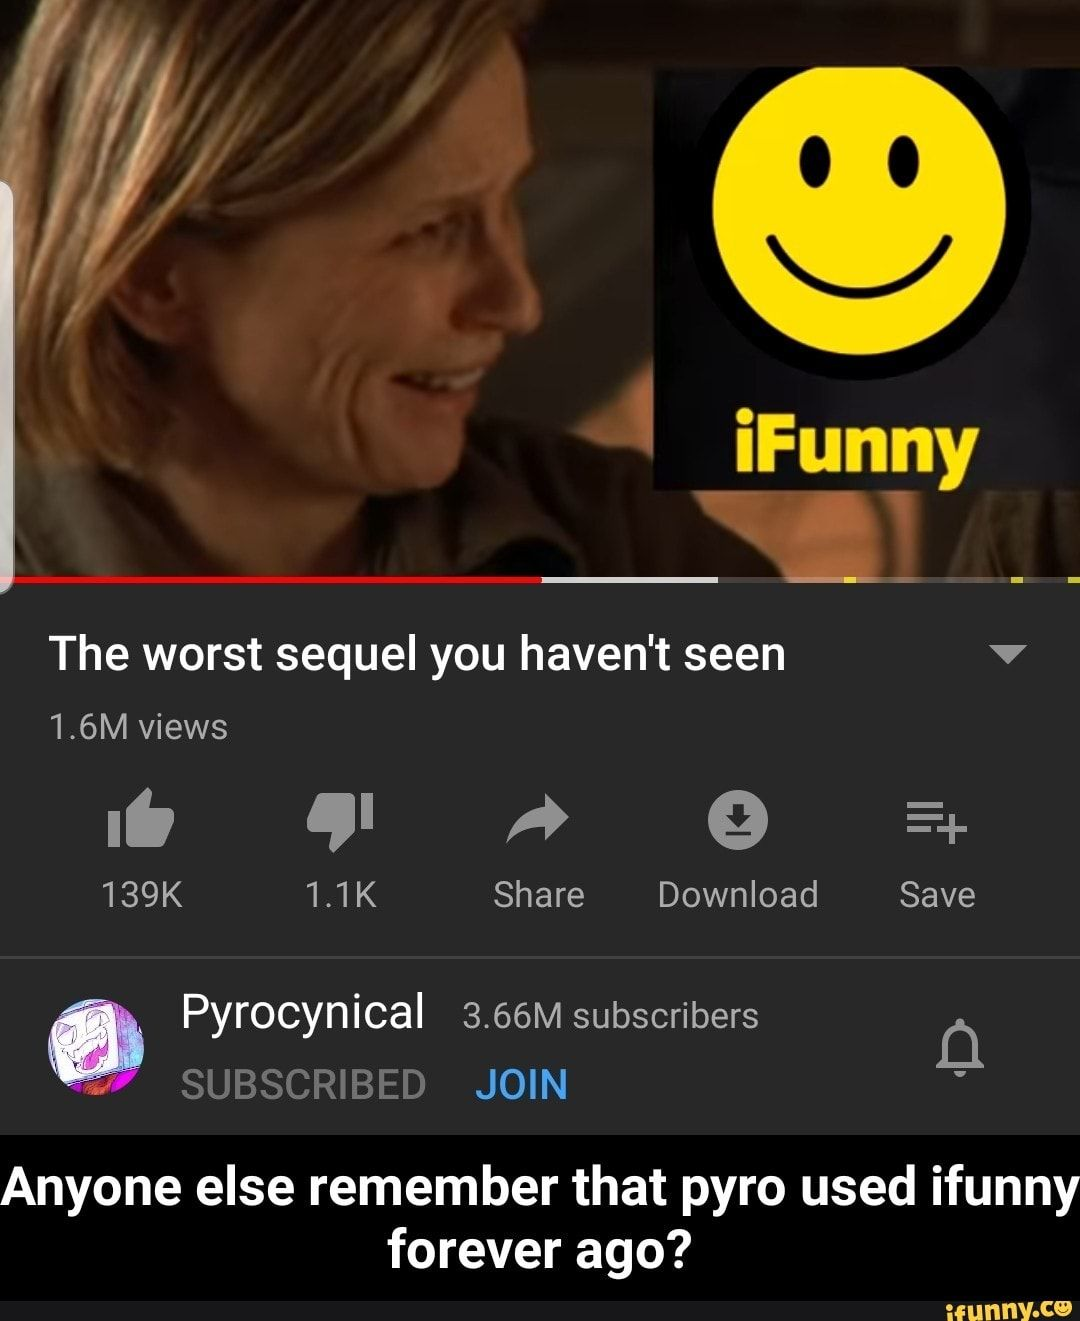 Anyone Else Remember That Pyro Used Ifunny Forever Ago Ifunny Ifunny Memes Funny Relatable Memes